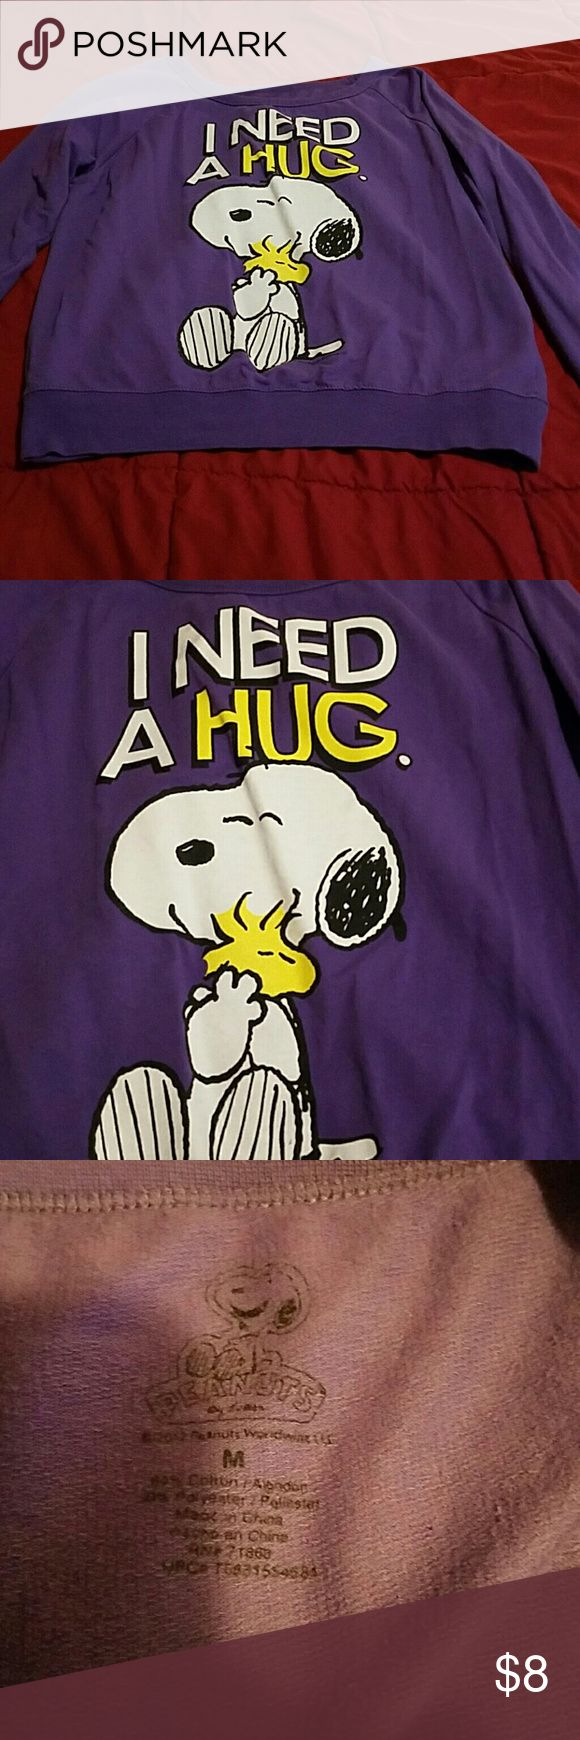 Long Hug Quotes 25 Best Ideas About I Need A Hug On Pinterest I